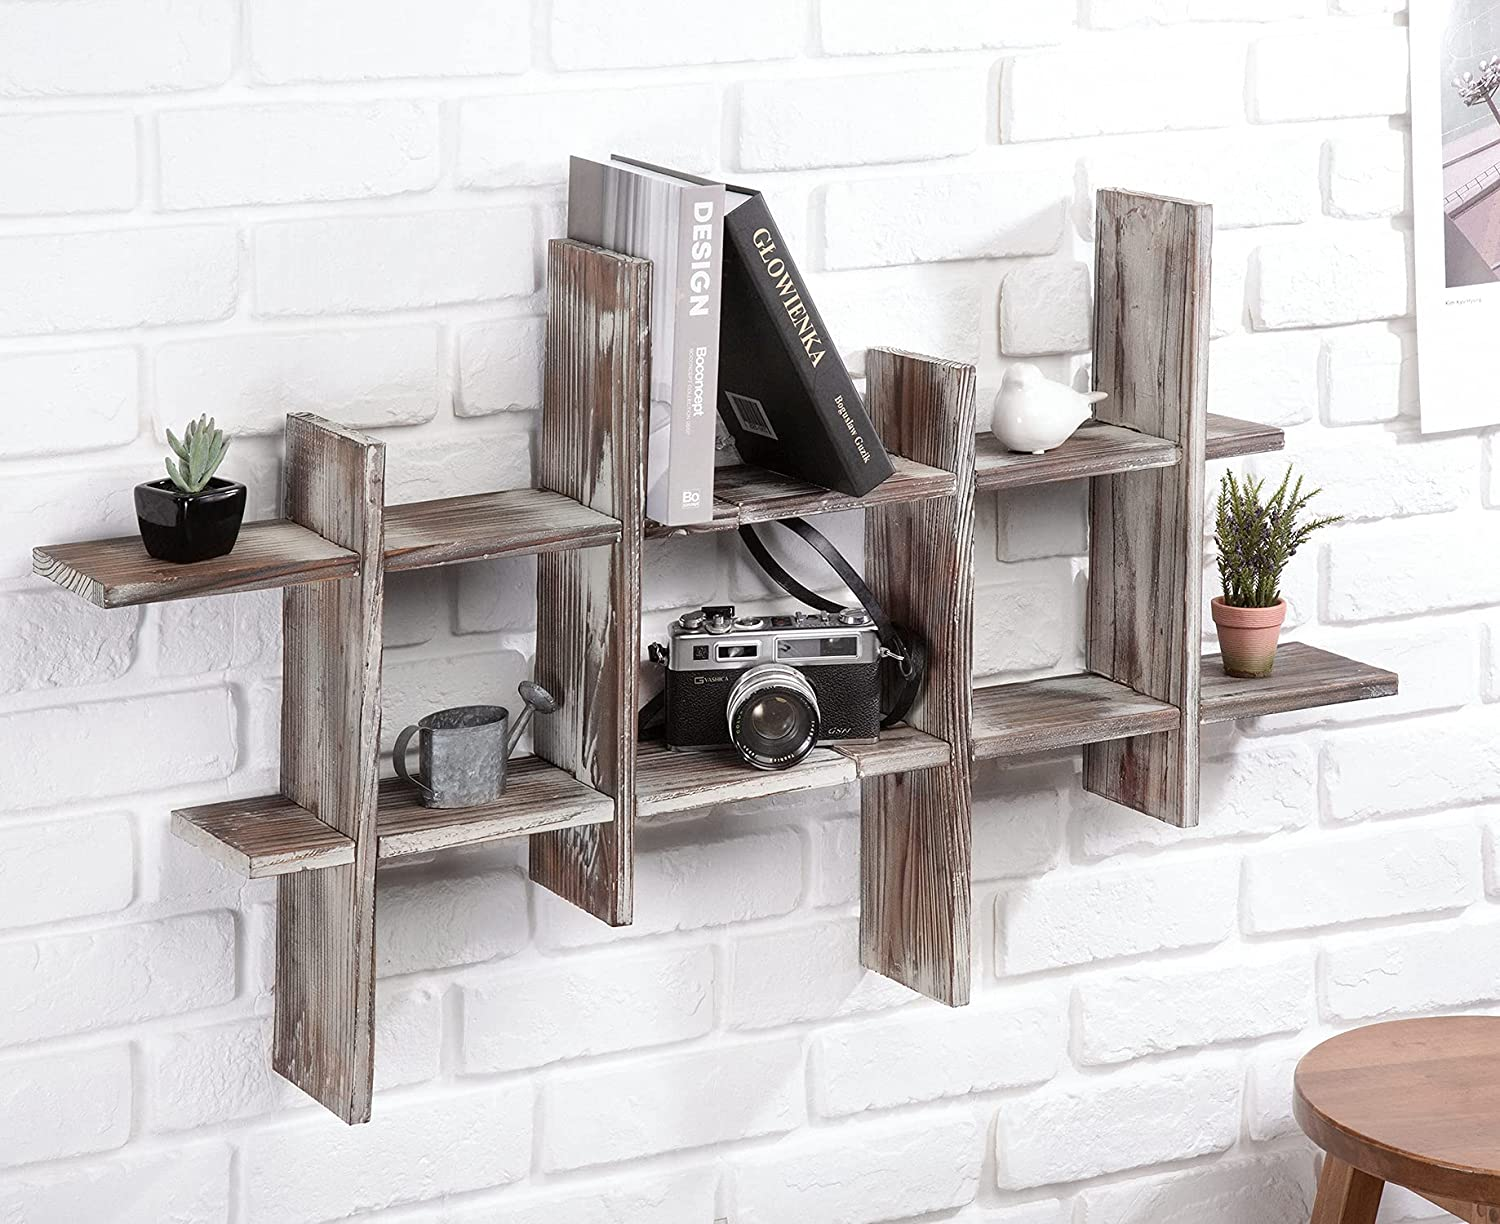 J JACKCUBE DESIGN Rustic Wall Mount Shipping low-pricing included Shelves of D Cube Grid 2 Set